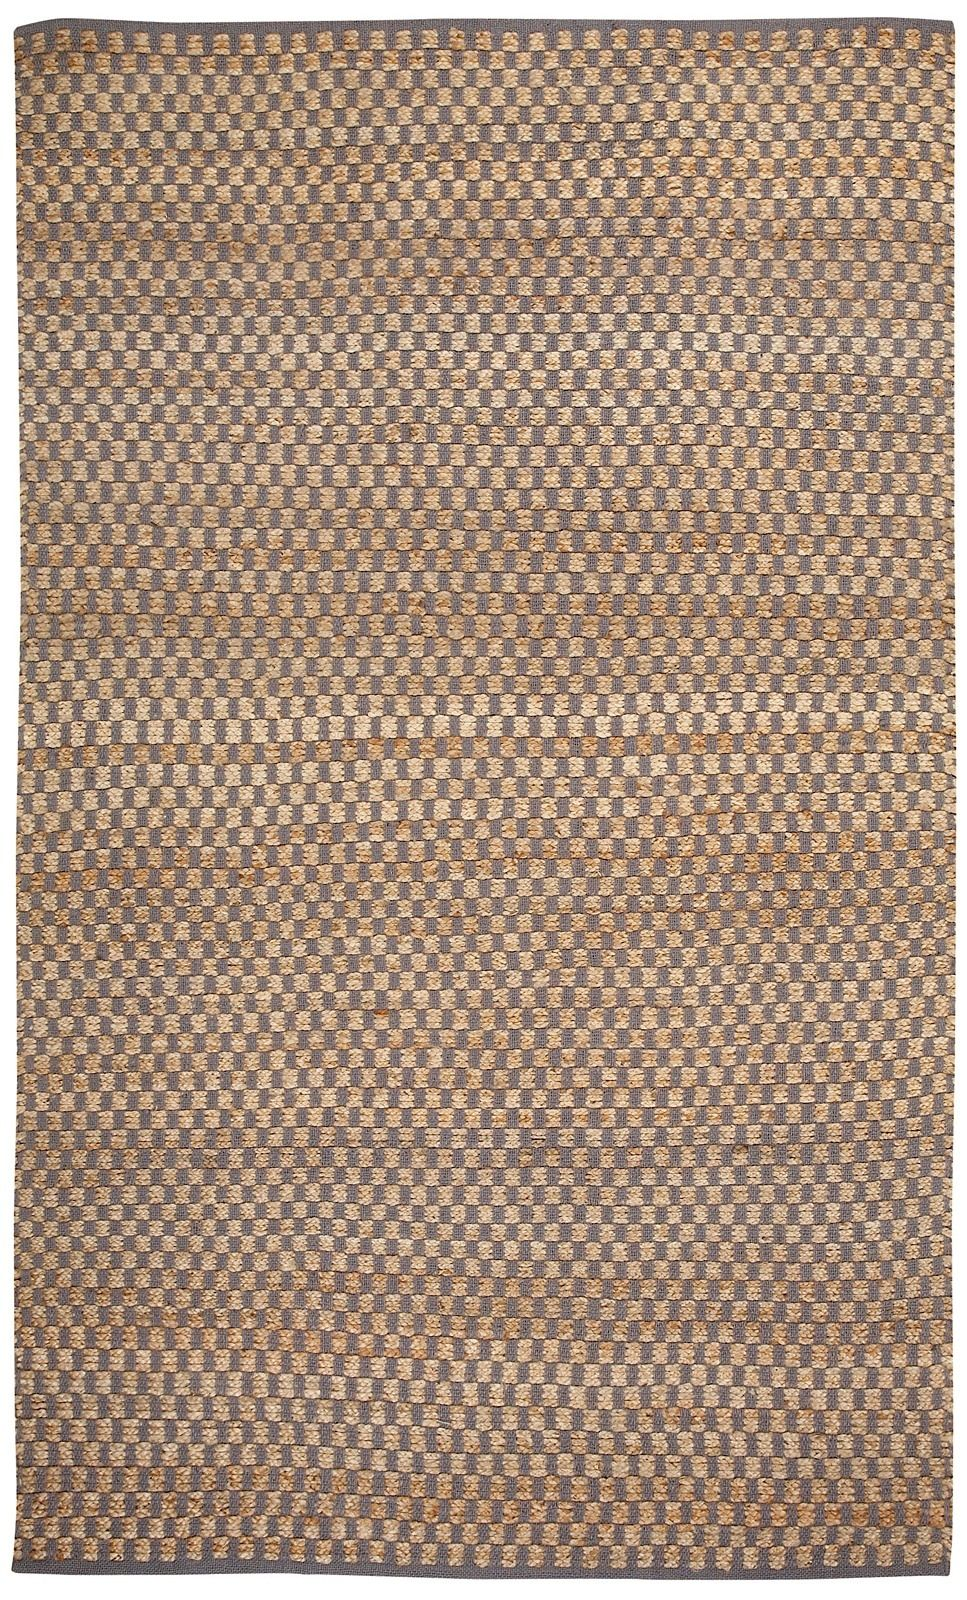 capel checkered contemporary area rug collection